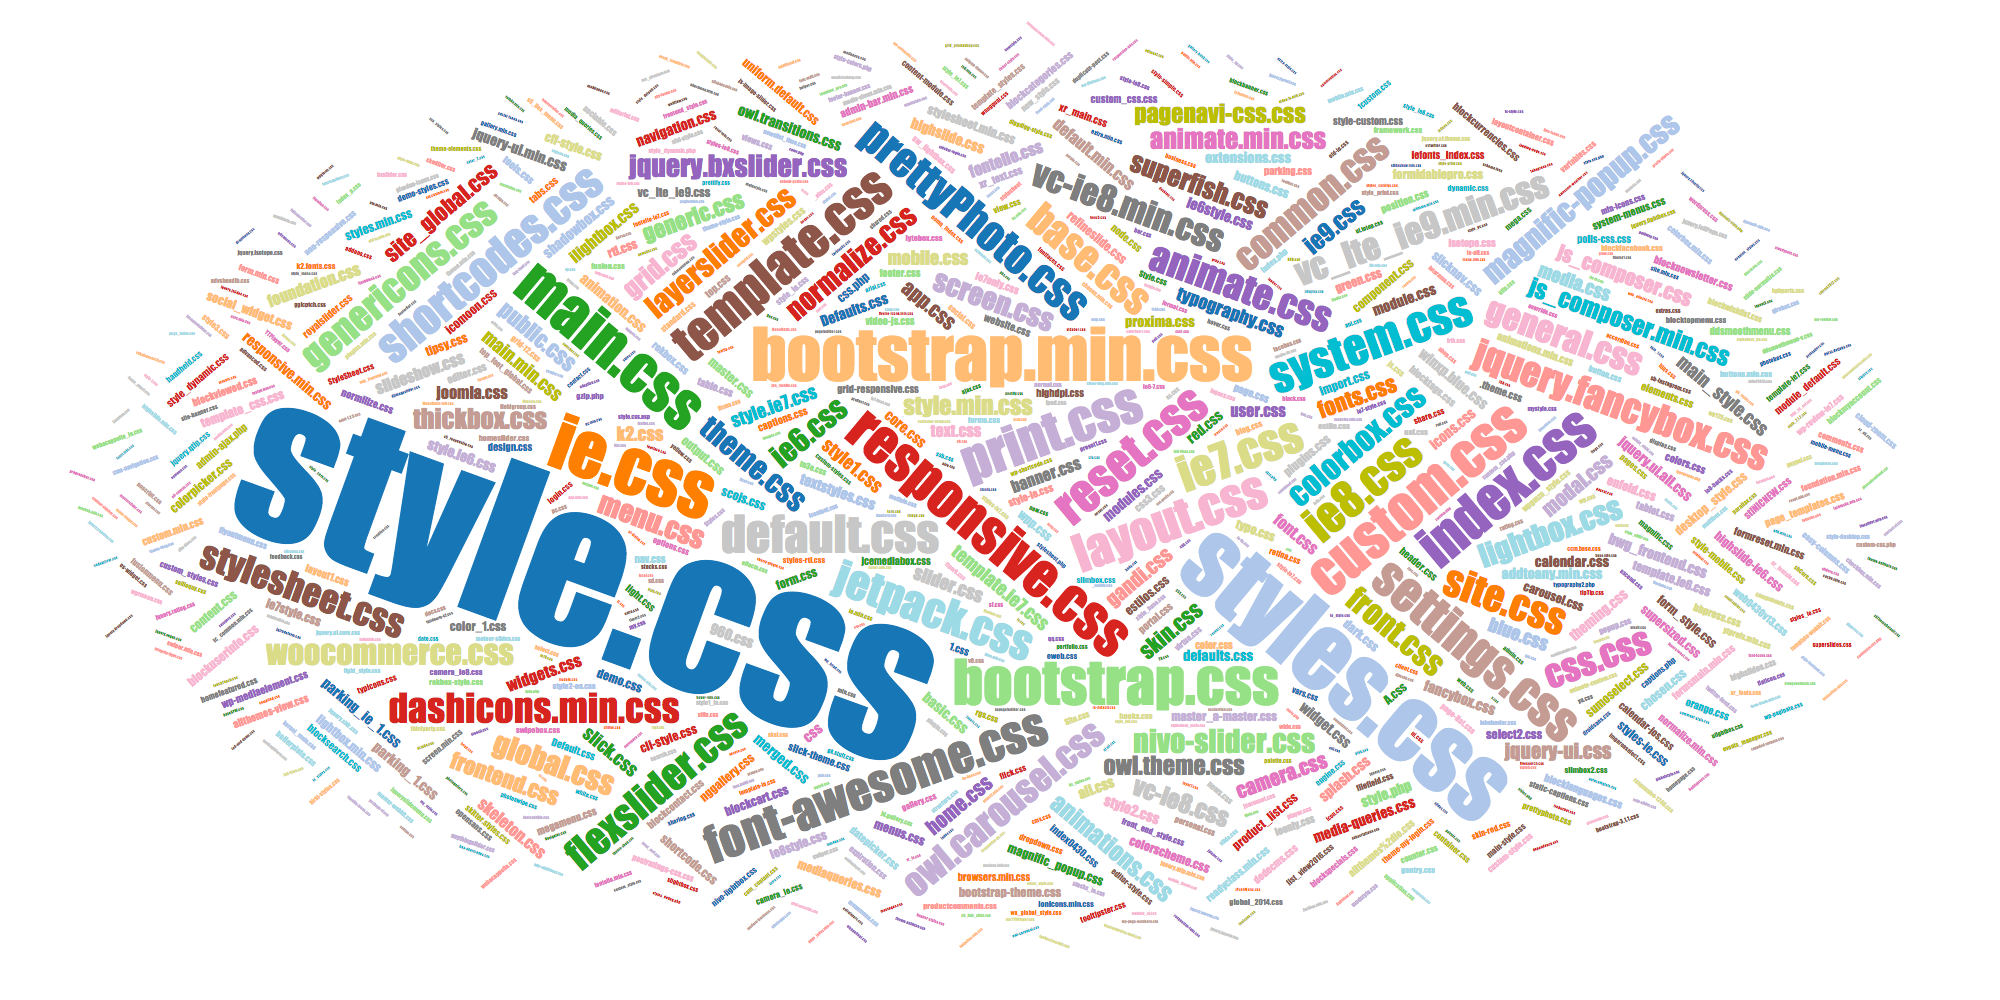 Popular names of CSS files common.css, custom.css, etc.